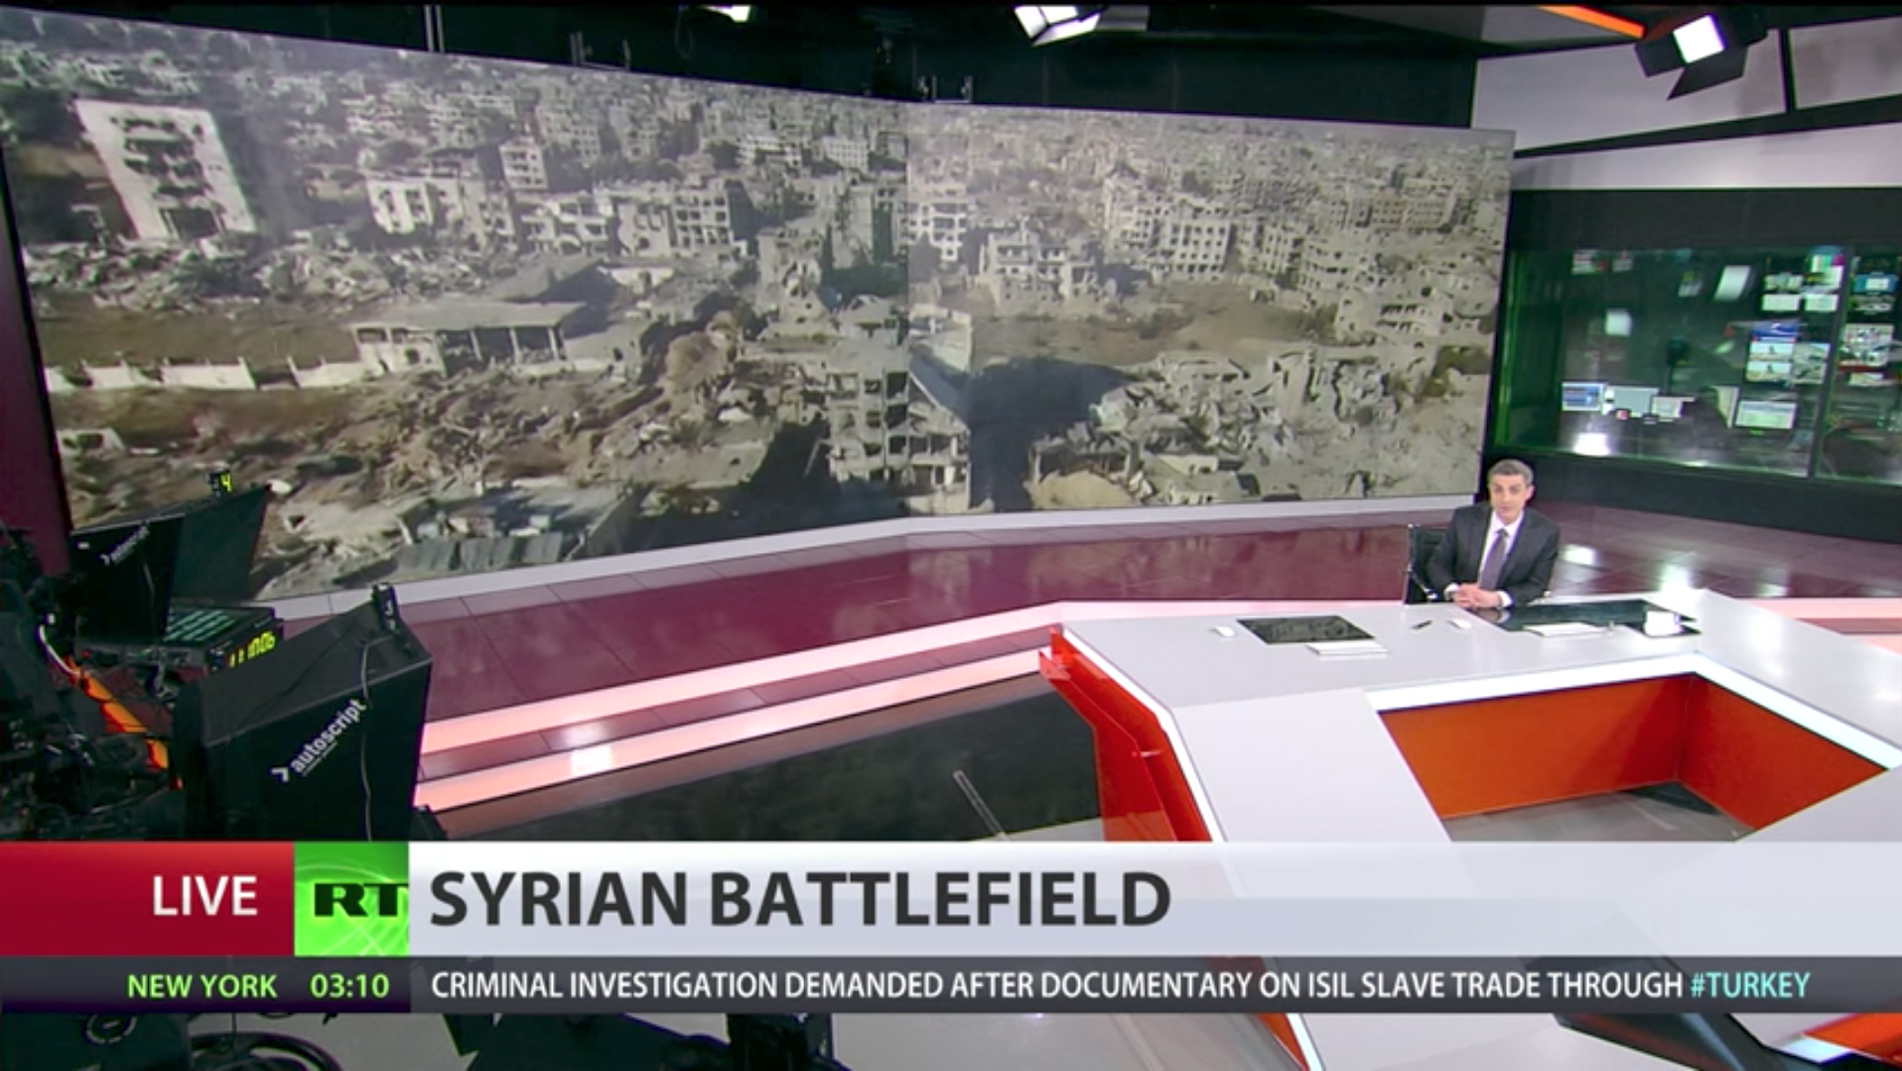 Aerial Imperialism: Syrian Ruinscapes and Vertical Media